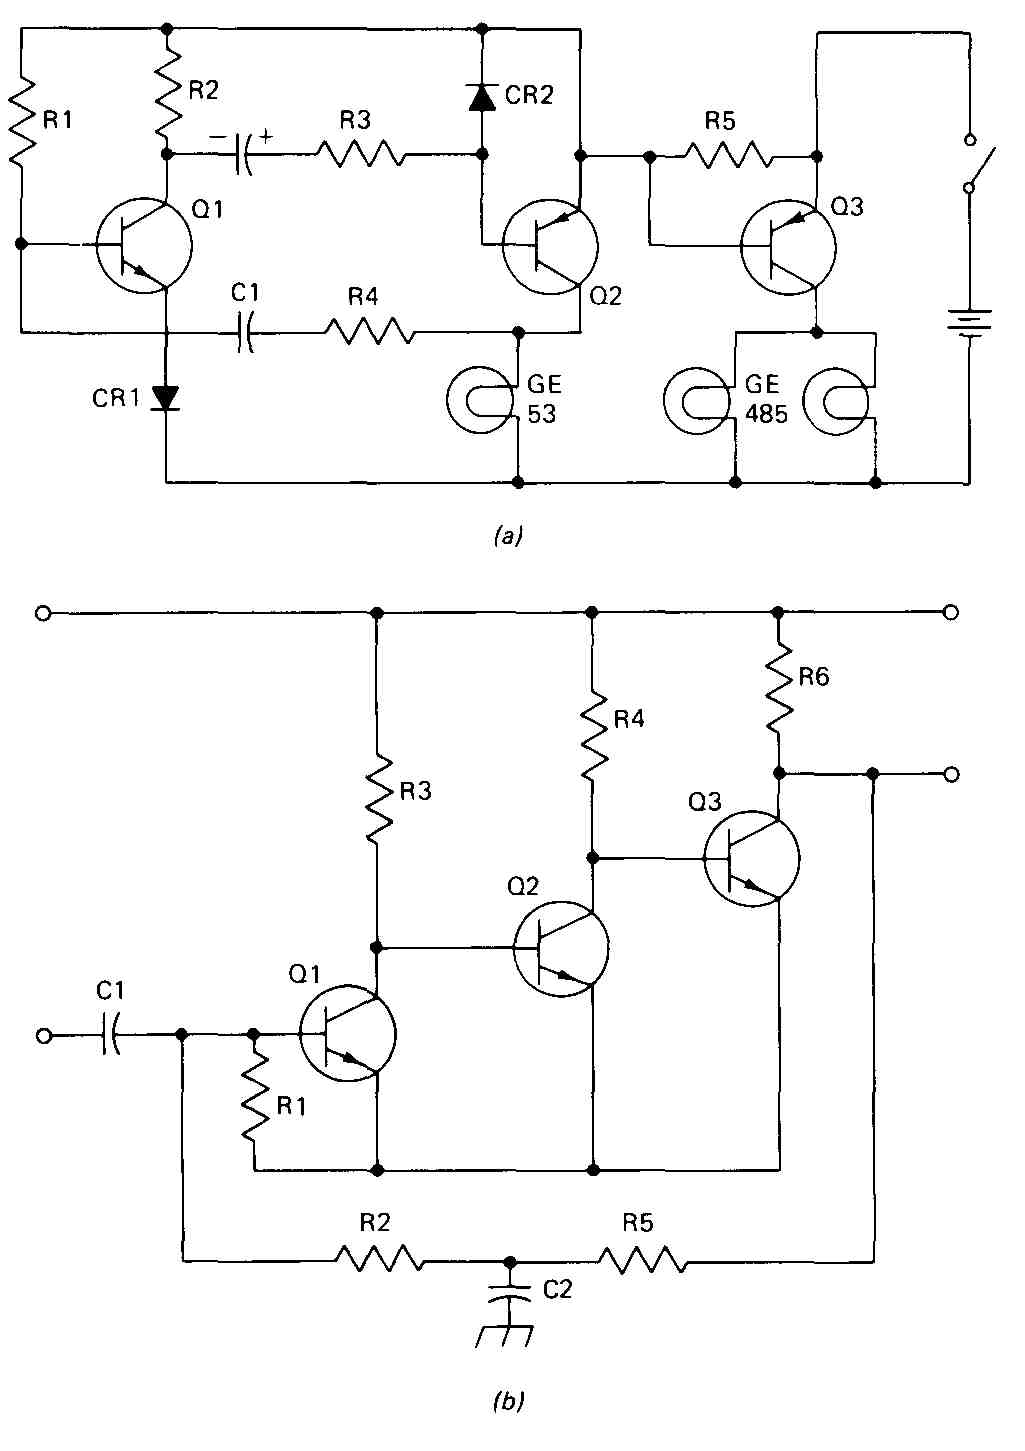 Strange Electrical And Electronic Schematic Diagrams Part 1 Wiring Digital Resources Hetepmognl